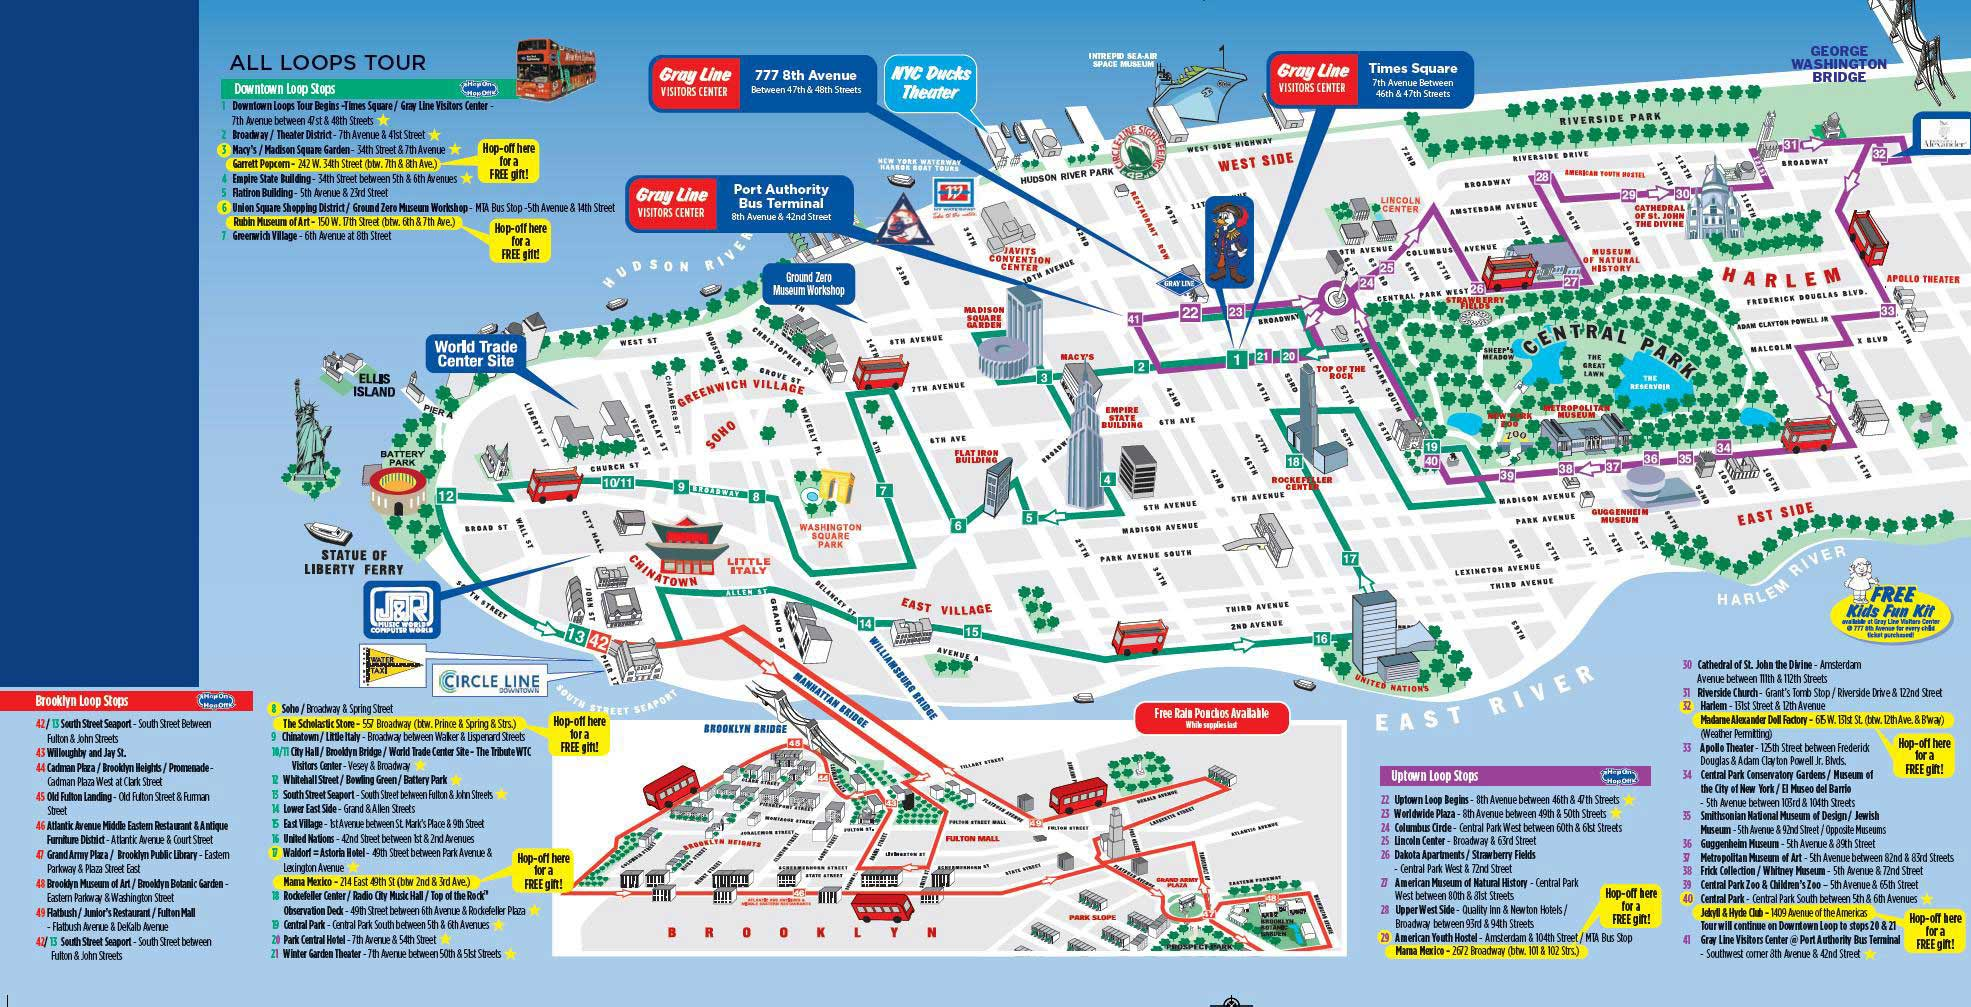 tourist nyc map with New York Ville Touristique on New York Ville Touristique further Road To Hana Map Road To Map Adventure Tours Gulch Road To Hana Map Best Stops together with Map Arezzo 52100 Arezzo Italy besides Area Code Latin America Map Mountain Ranges 58 With And Of Mexico Within further Map Maratea 85046 Potenza Italy.